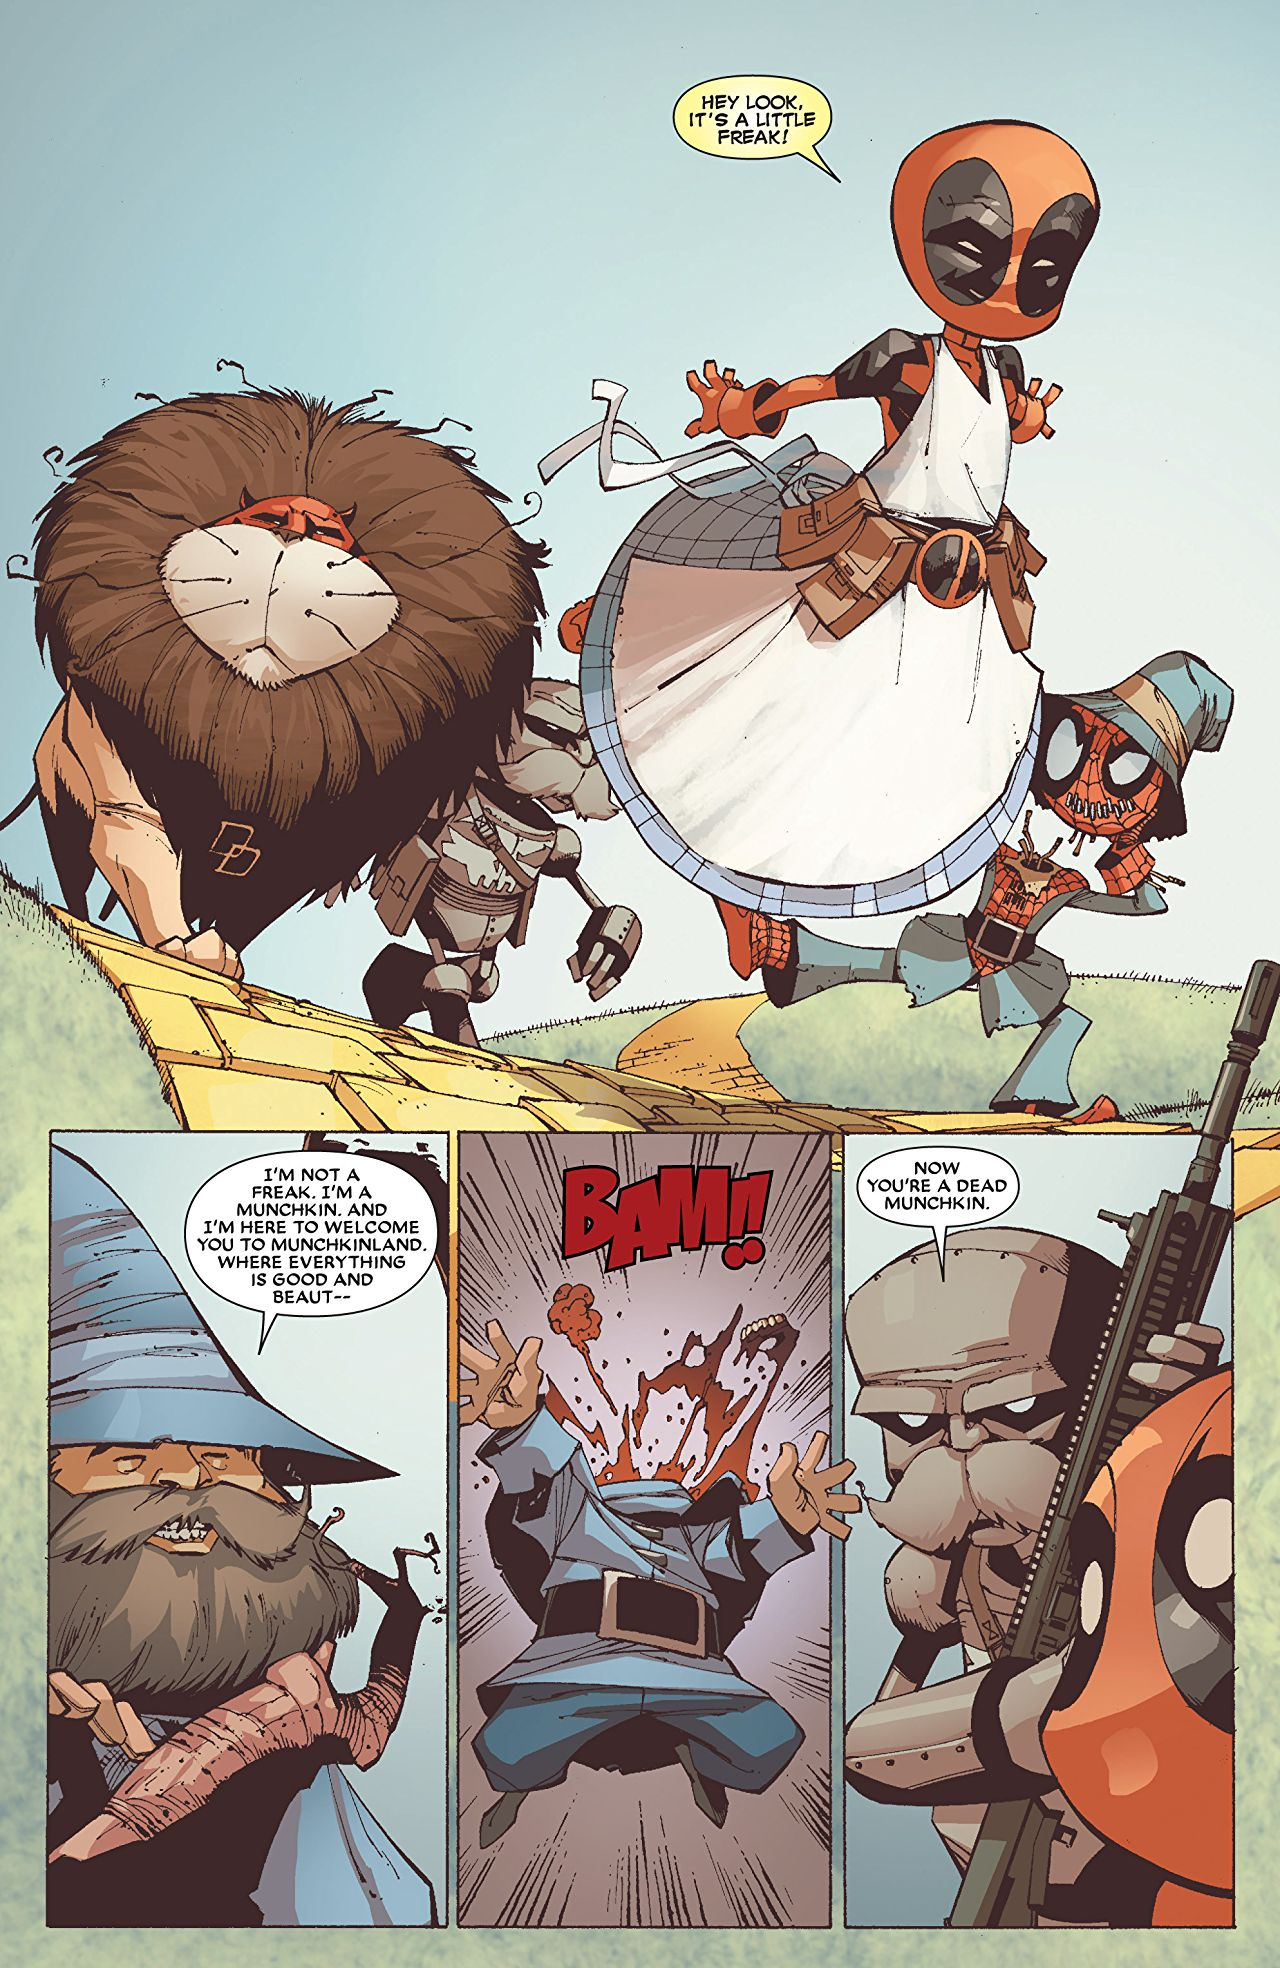 Suicide clipart deadpool 5) #4 Kings #4 by